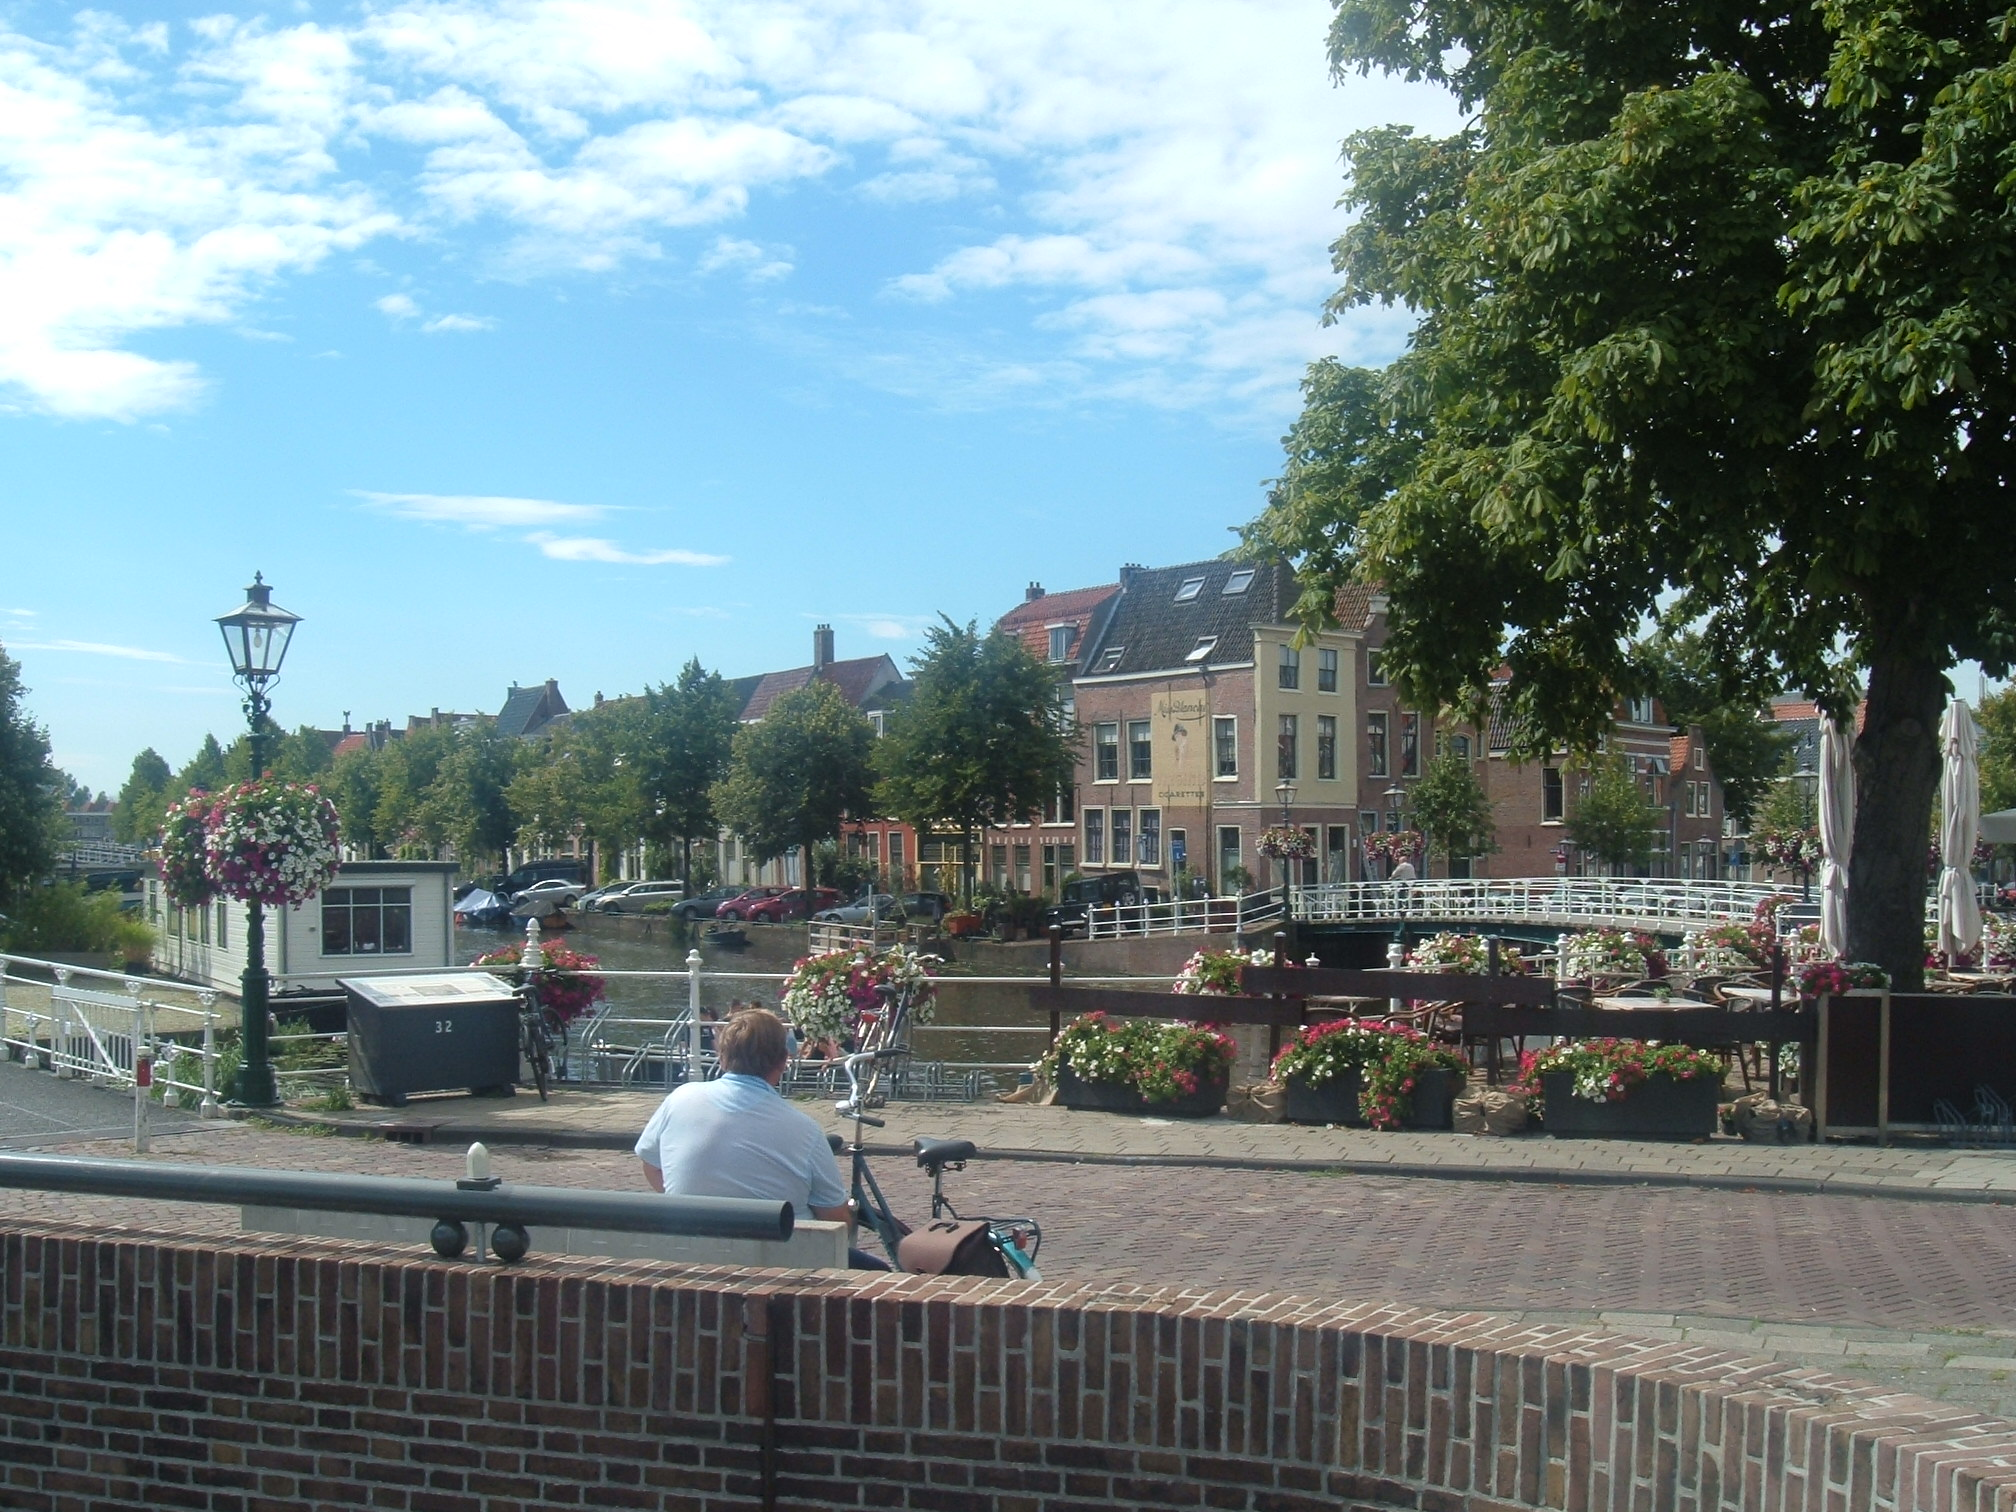 A Sunny Day in Leiden (the Netherlands) (August 2015)